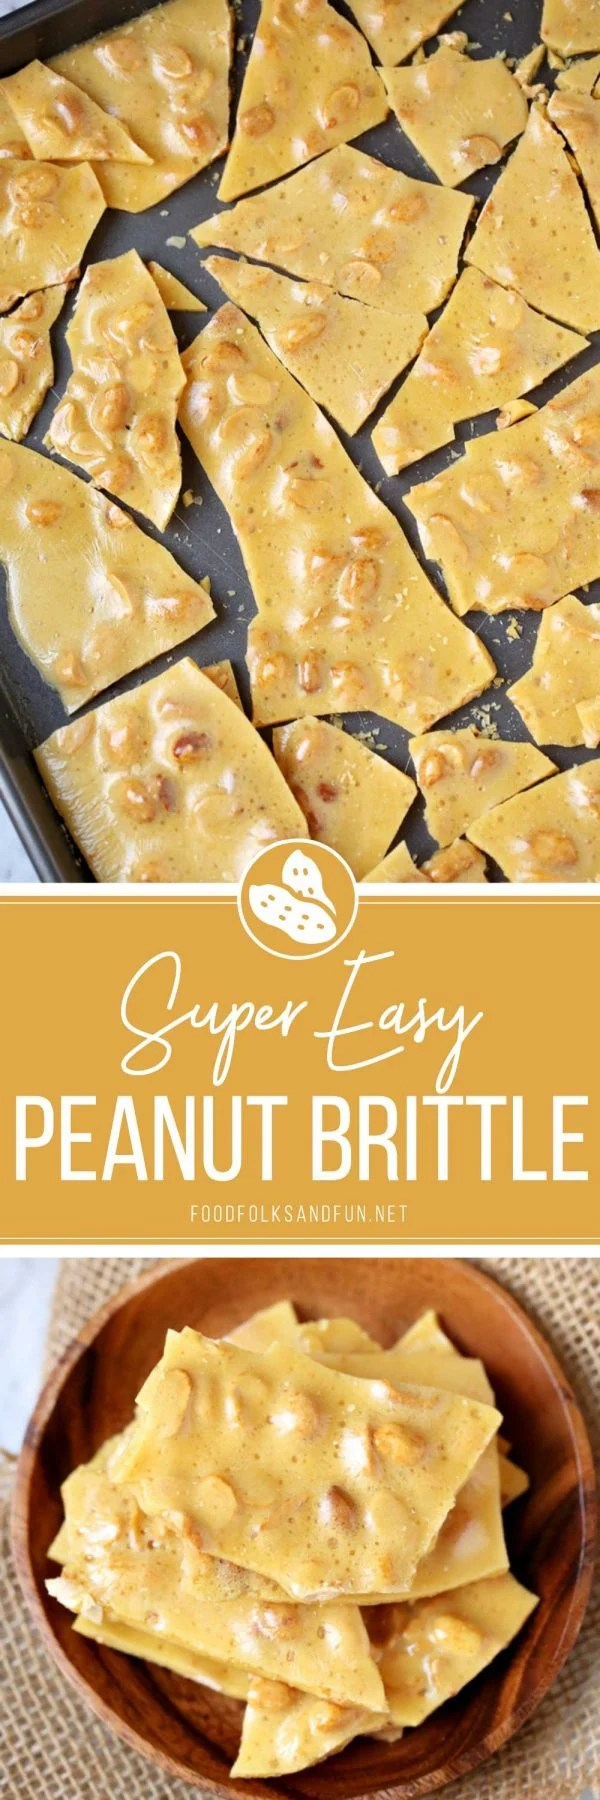 This classic Peanut Brittle recipe is easy to make and great for gift giving year-round. It's buttery, airy, and oh so addicting! via @foodfolksandfun